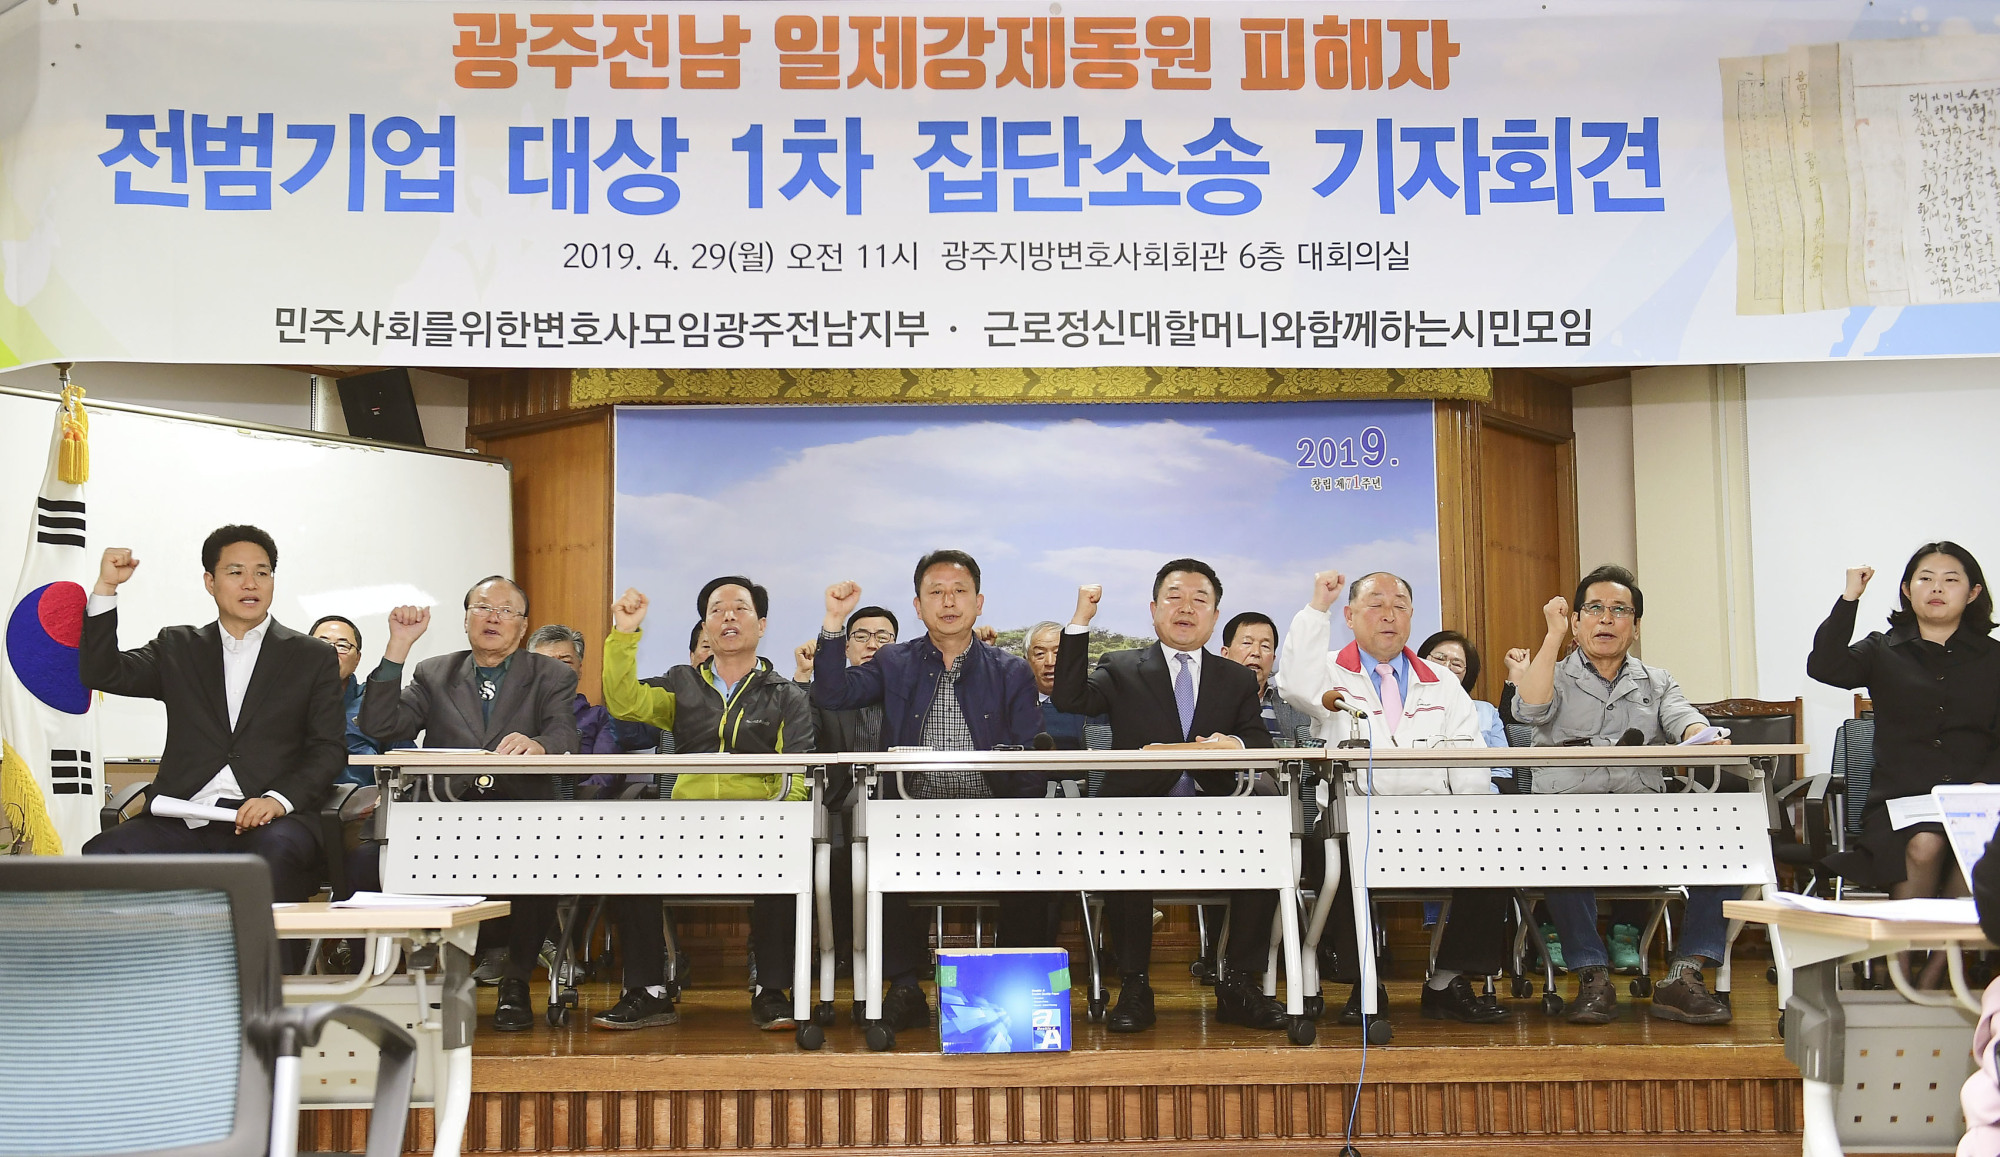 "Plaintiffs in new lawsuits filed against Japanese firms over wartime labor, together with their lawyers, give a news conference in Gwangju, South Korea, on April 29. Thorny wartime compensation issues led the Japanese government to call on Monday for the setting up of an arbitration board under a 1965 pact that normalized Tokyo-Seoul bilateral ties. | ‹?""¯"